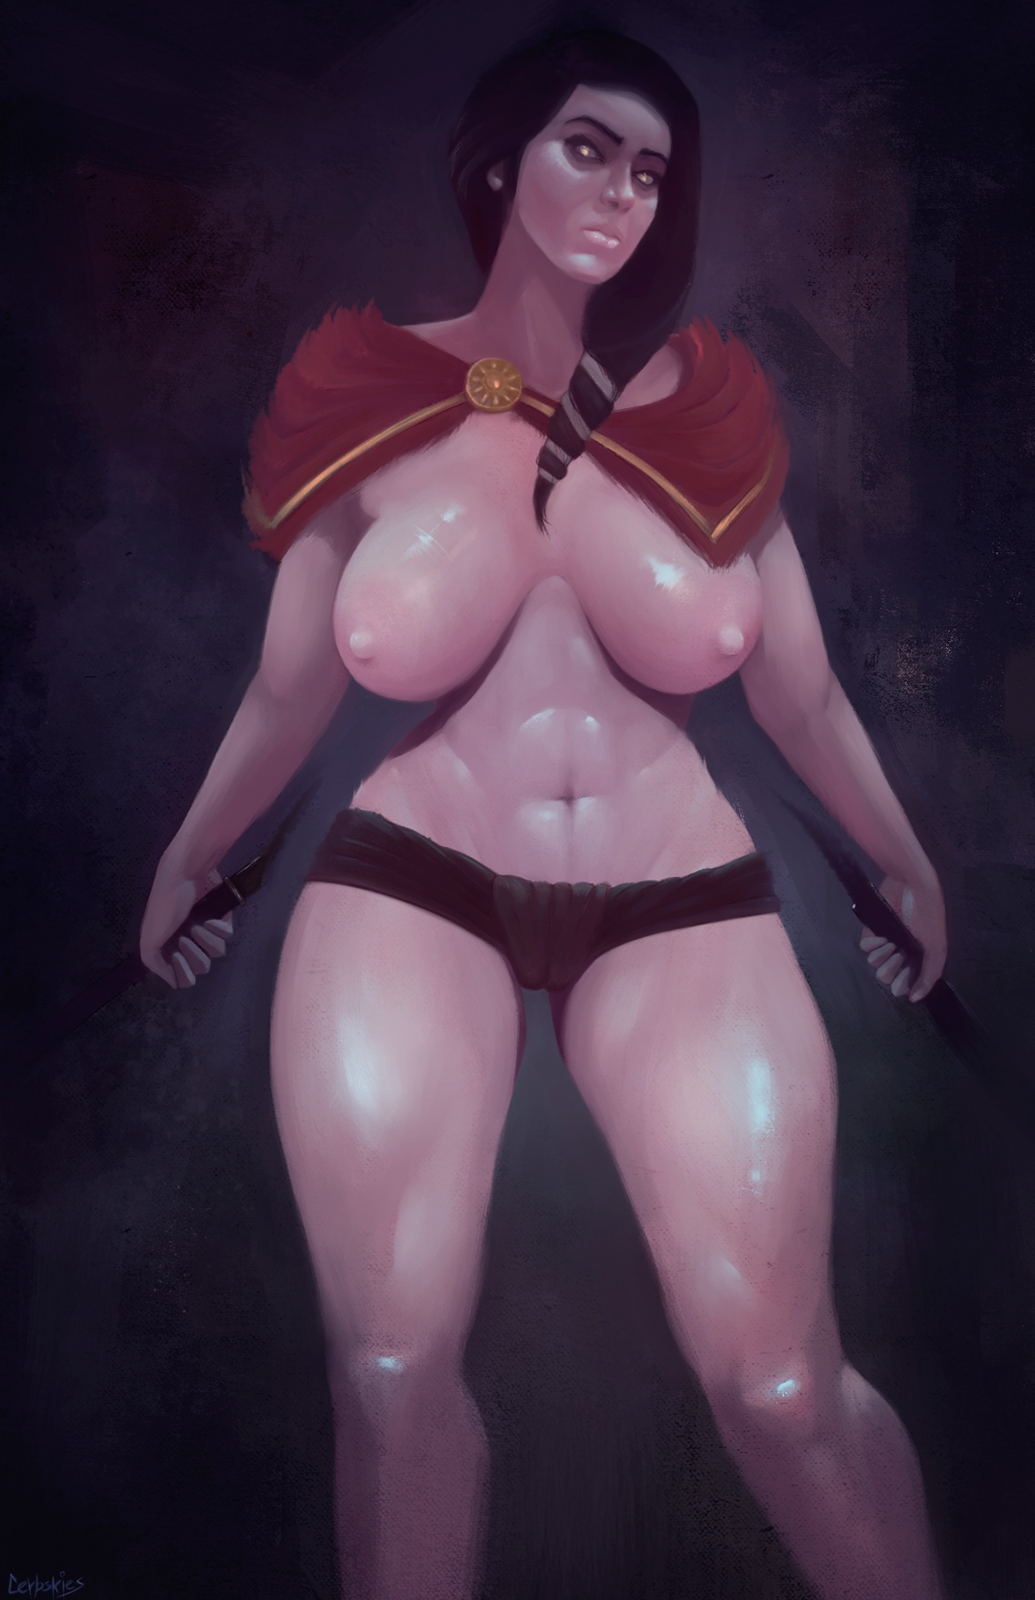 odyssey creed assassin's hentai kassandra Tarot witch of the black rose raven hex